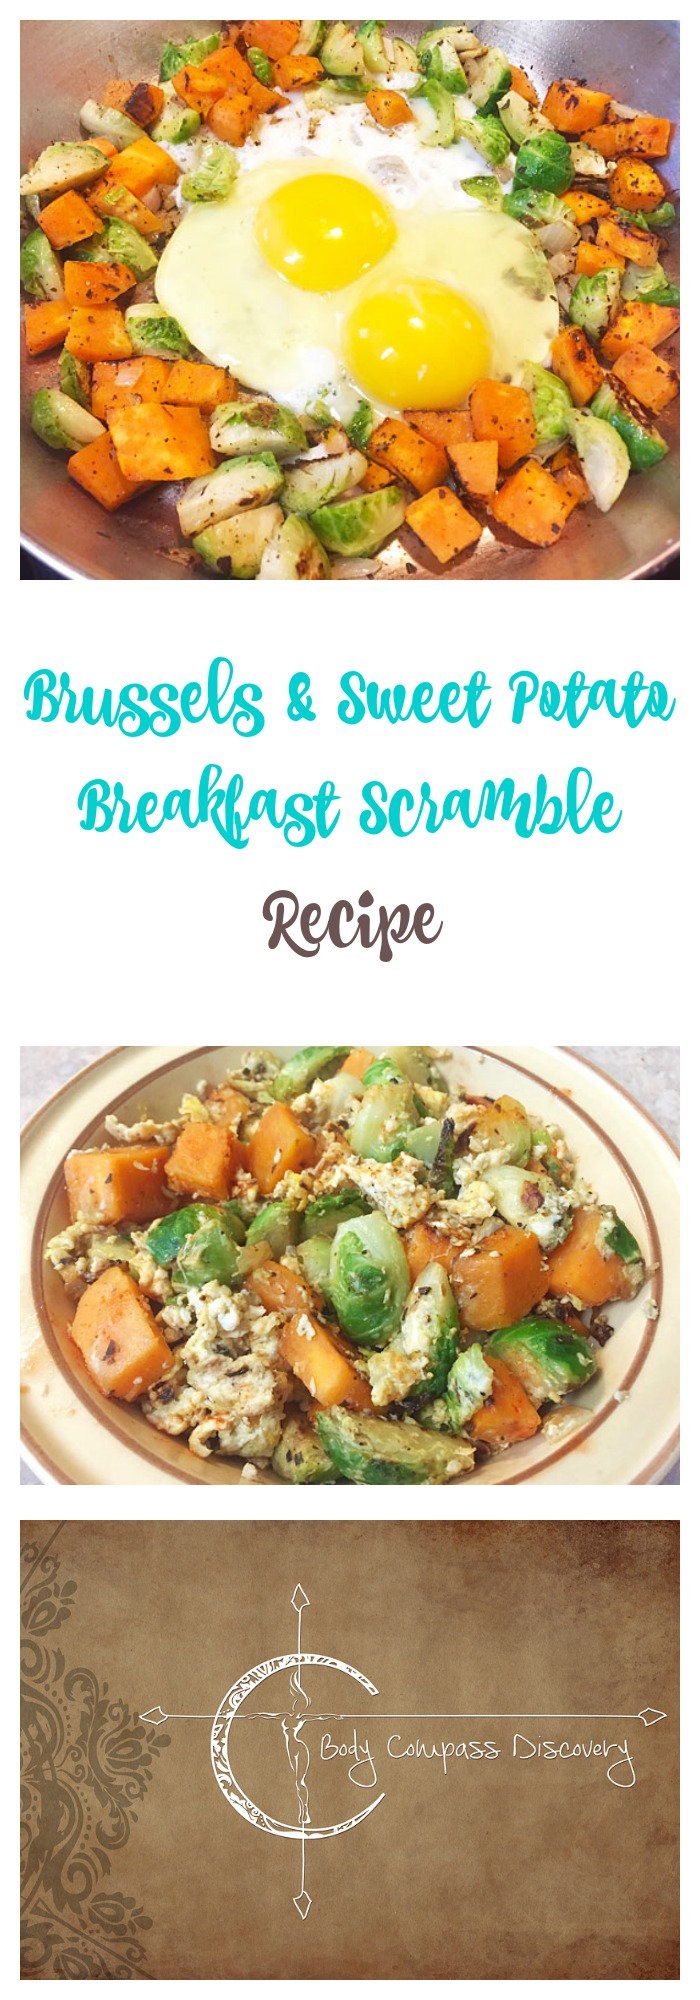 Brussels & Sweet Potato Scramble recipe